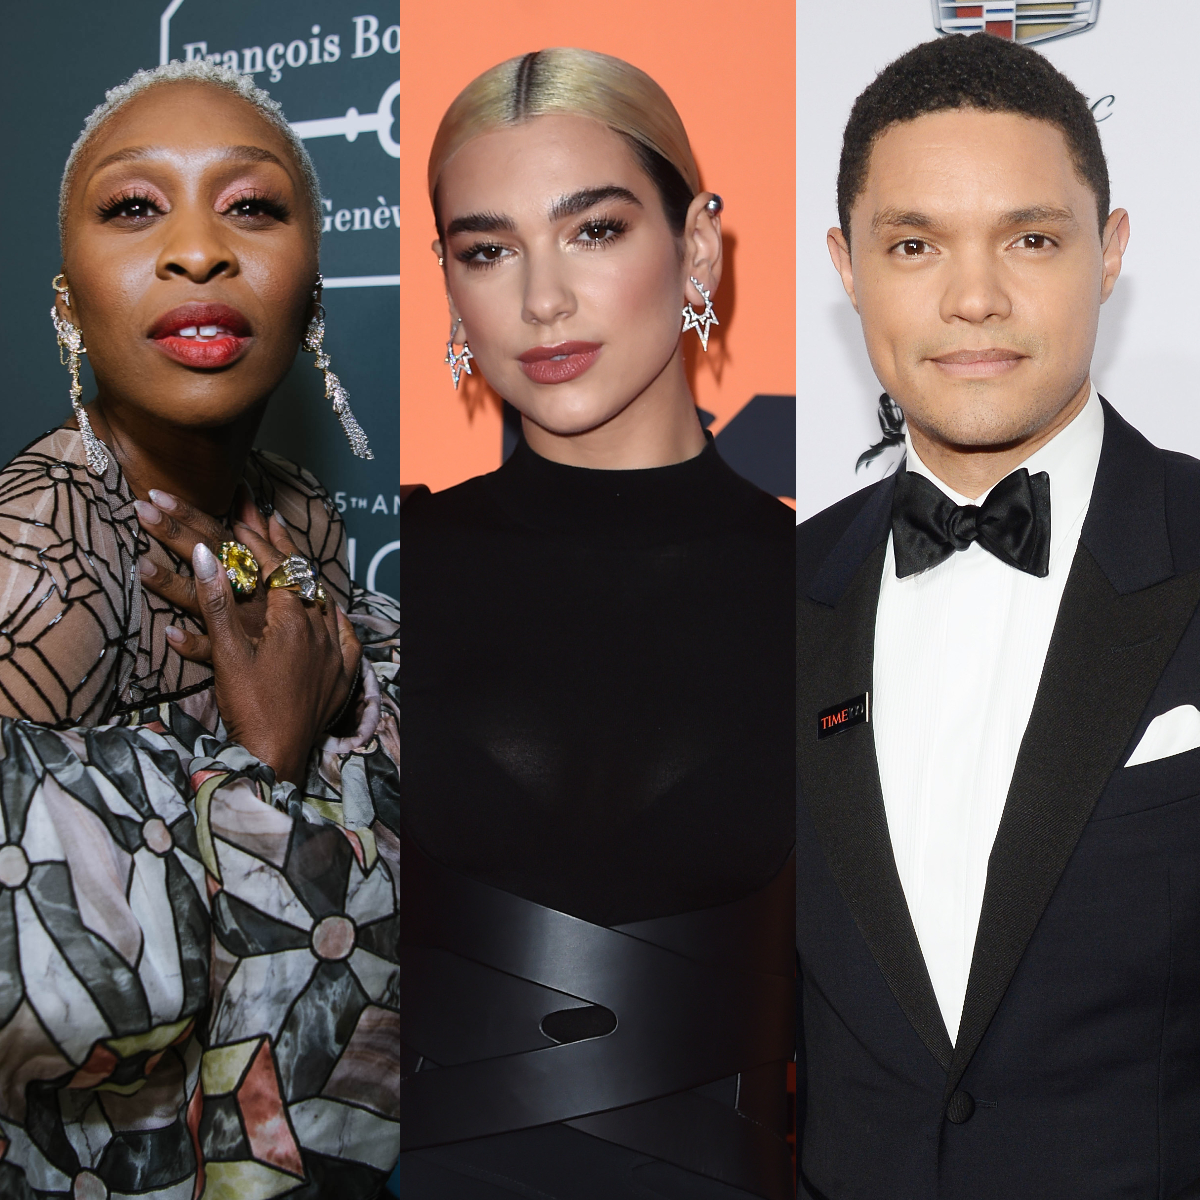 Grammy Awards 2020: Cynthia Erivo, Dua Lipa, Trevor Noah and more to present at the ceremony; Check it out